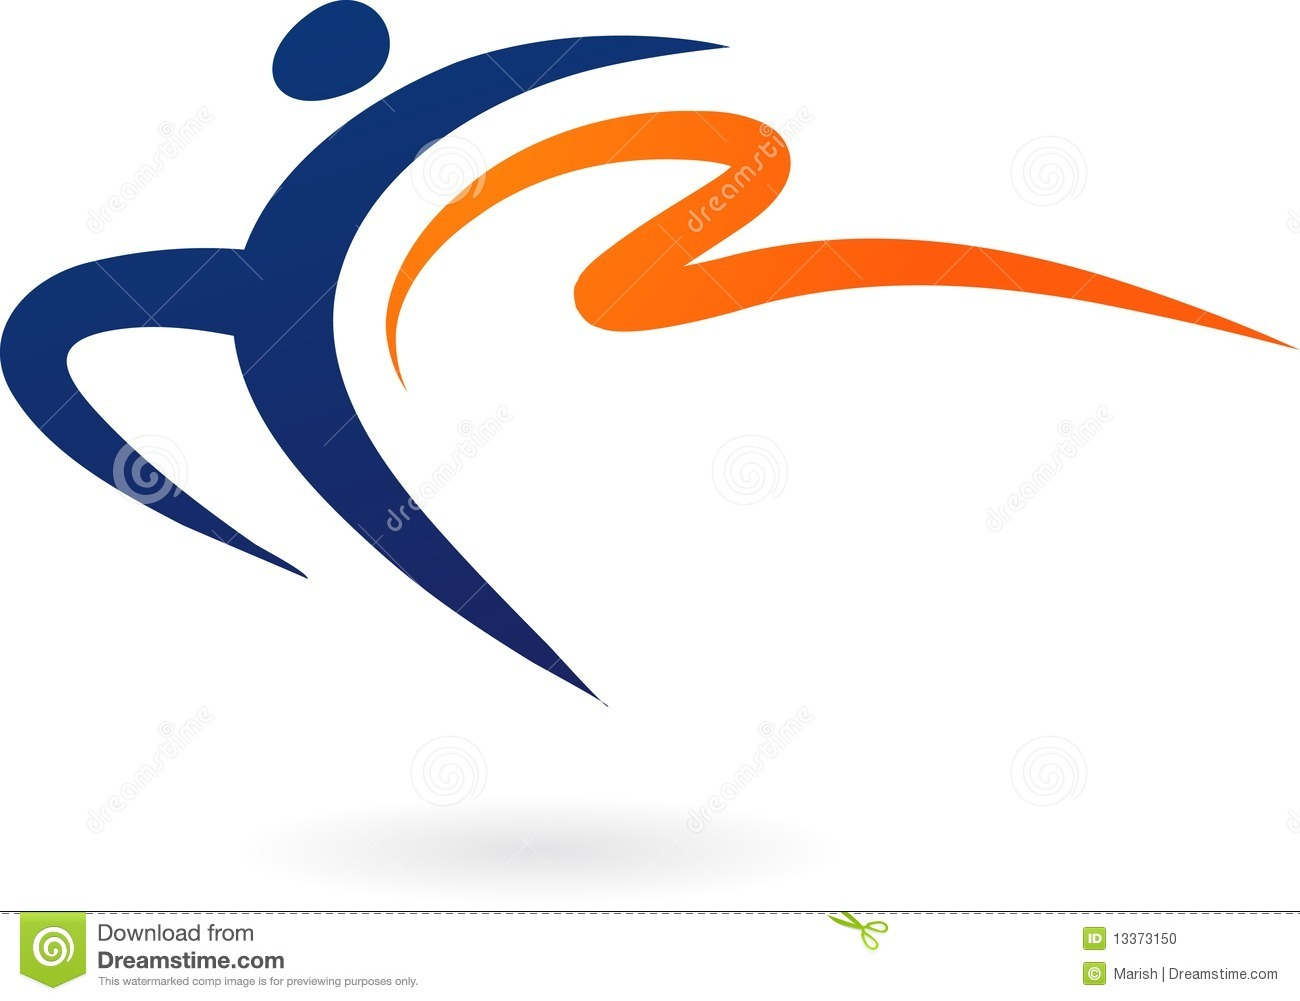 Sport Vecto Rlogo - Gymnastics Stock Photo - Image: 13373150